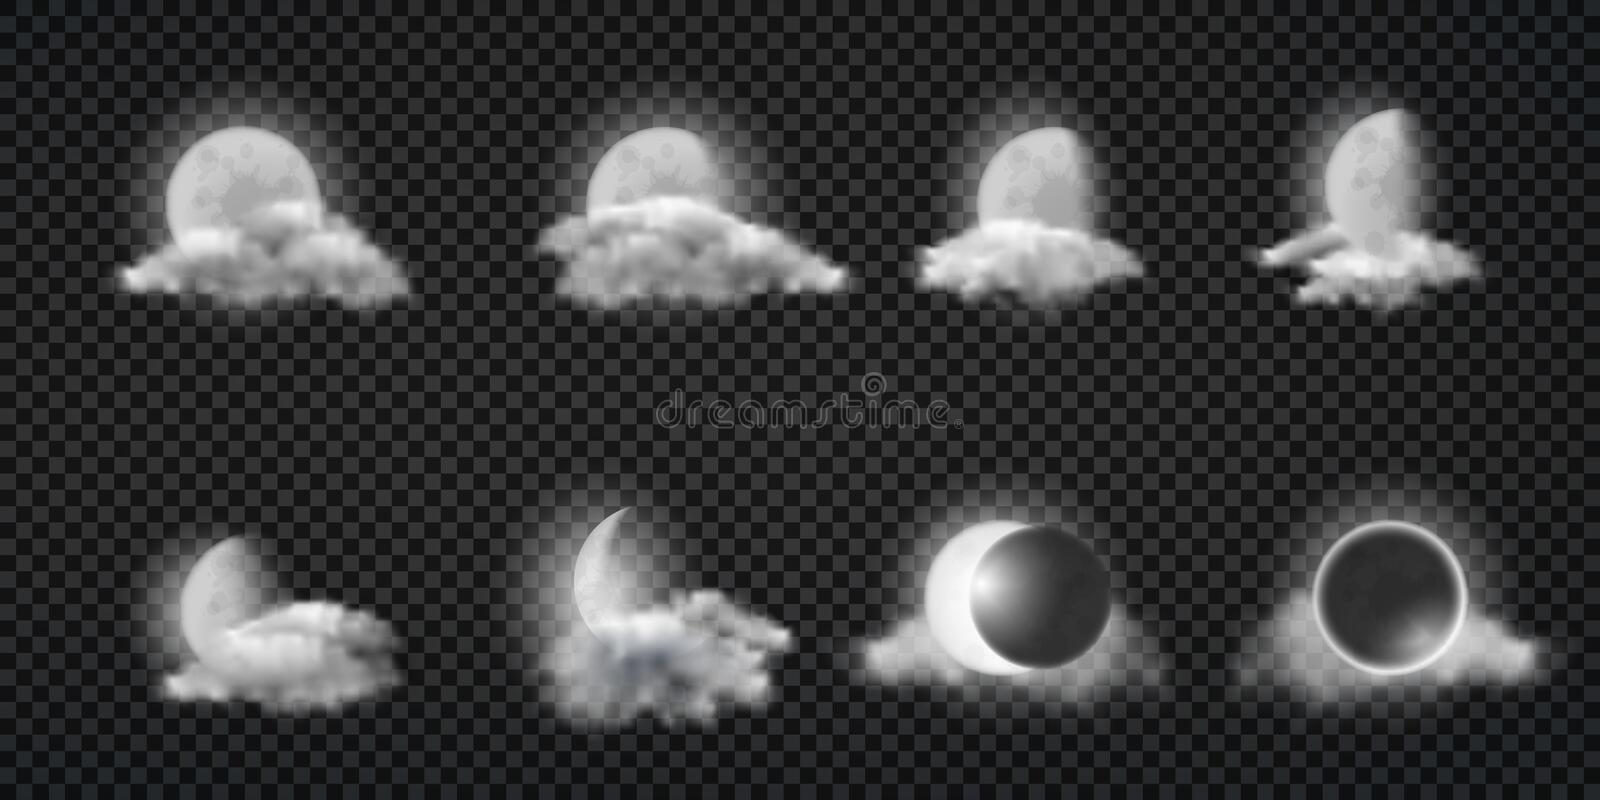 Night weather forecast icons realistic vector set. Night weather forecast realistic vector icons set. Lunar eclipse, moon calendar design elements collection vector illustration